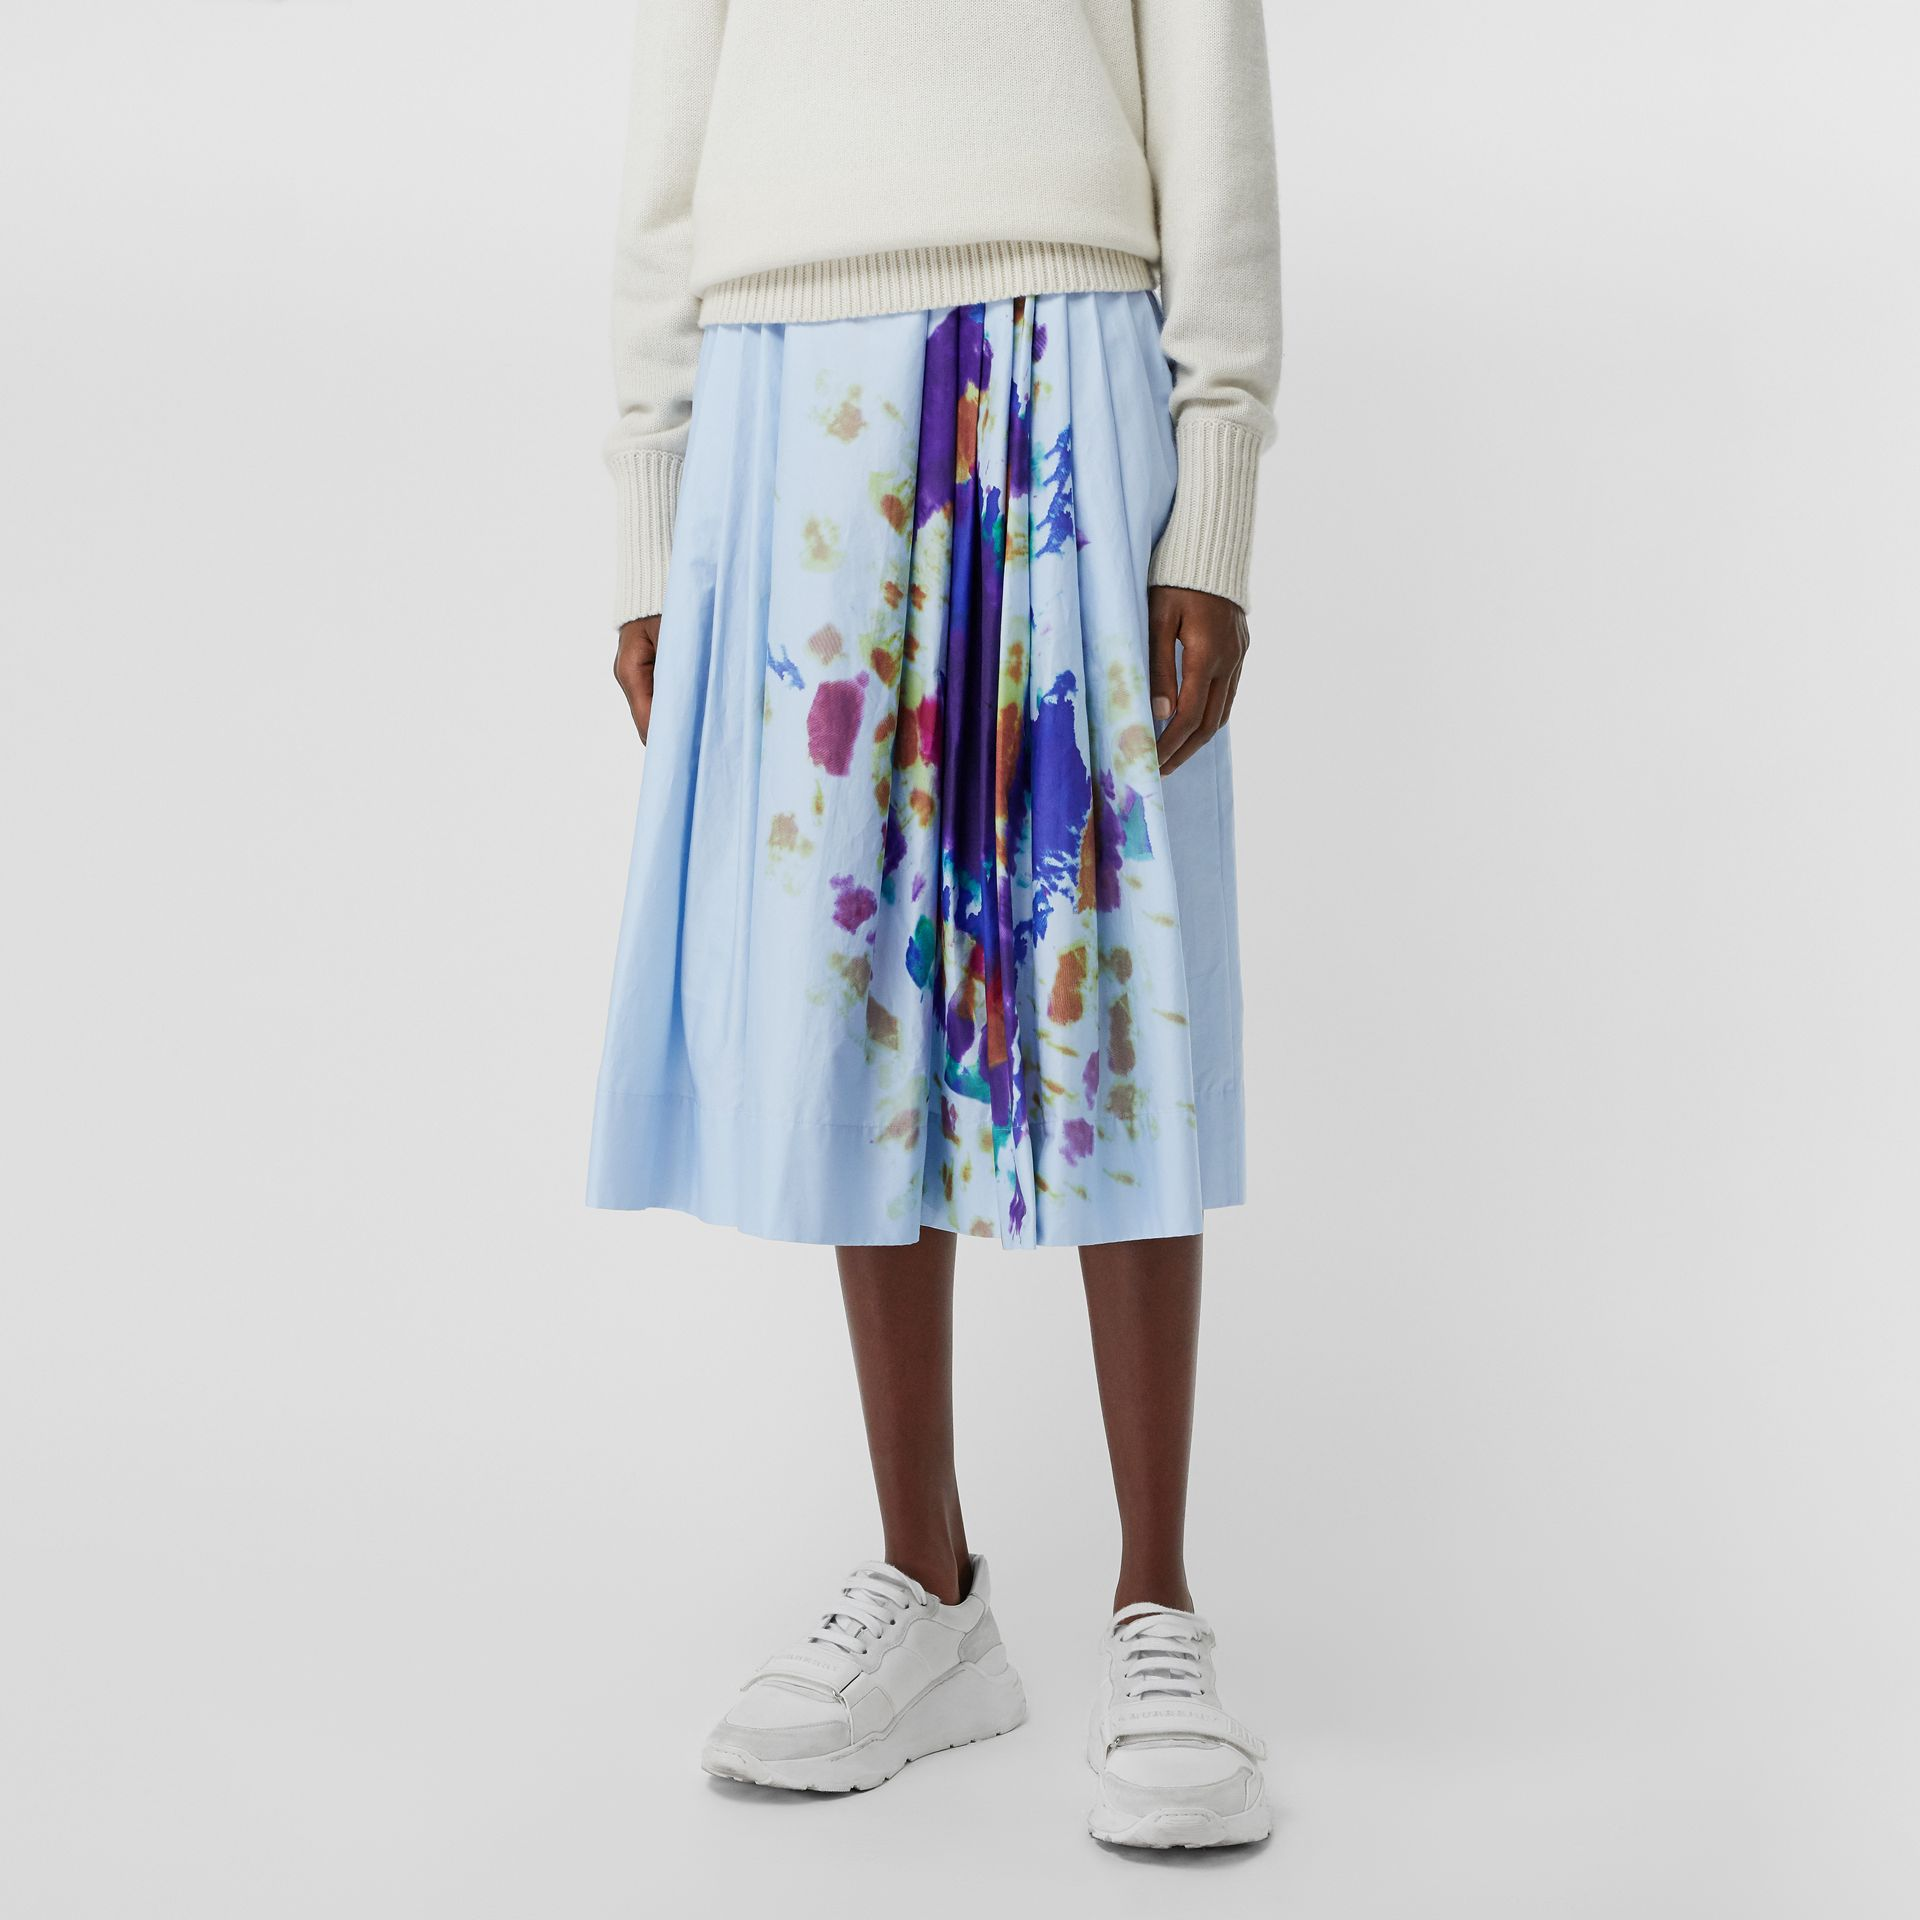 Rainbow Print Cotton Sateen Skirt in Light Blue - Women | Burberry Singapore - gallery image 4